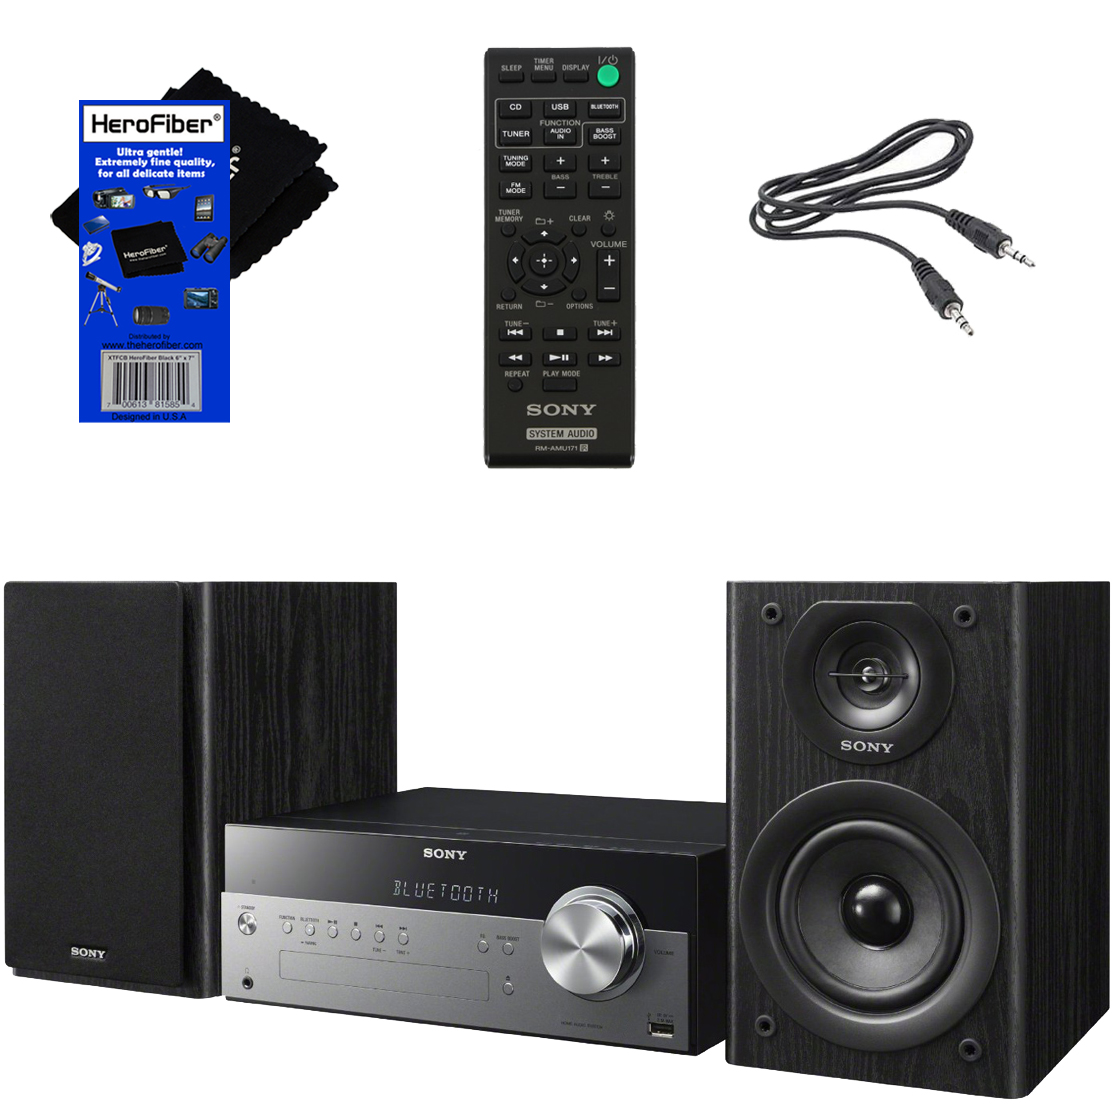 Sony All In One Stylish Micro Music Stereo System with Wireless Streaming...